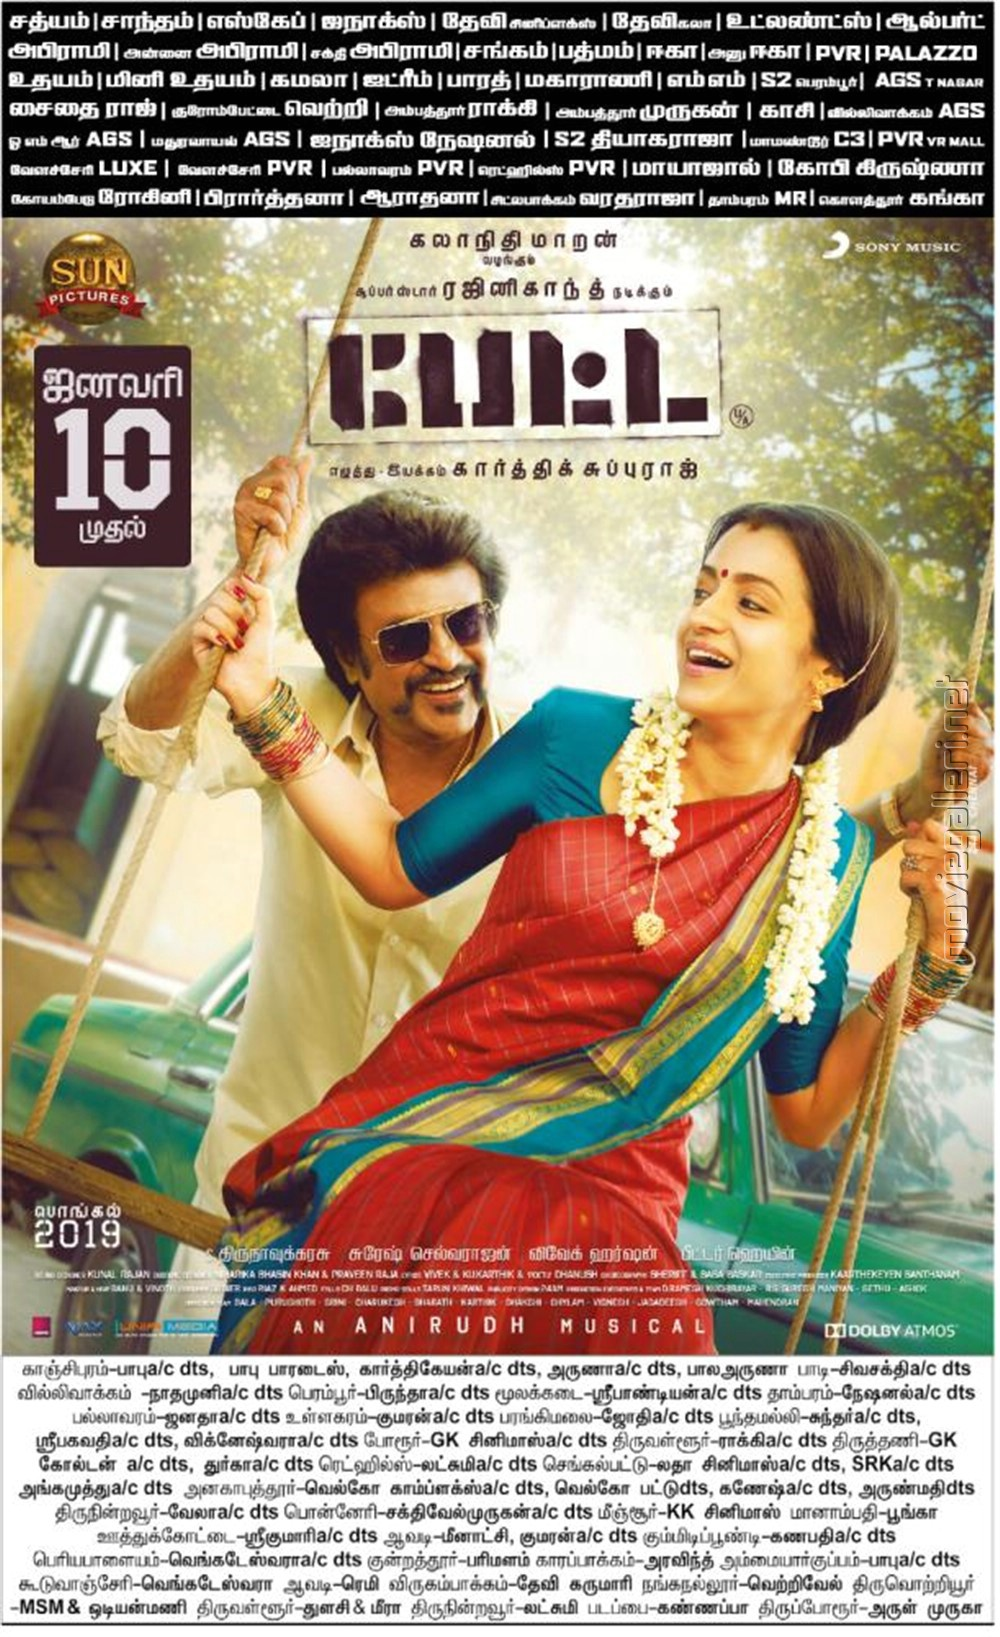 Rajinikanth, Trisha in Petta Movie Release Posters HD